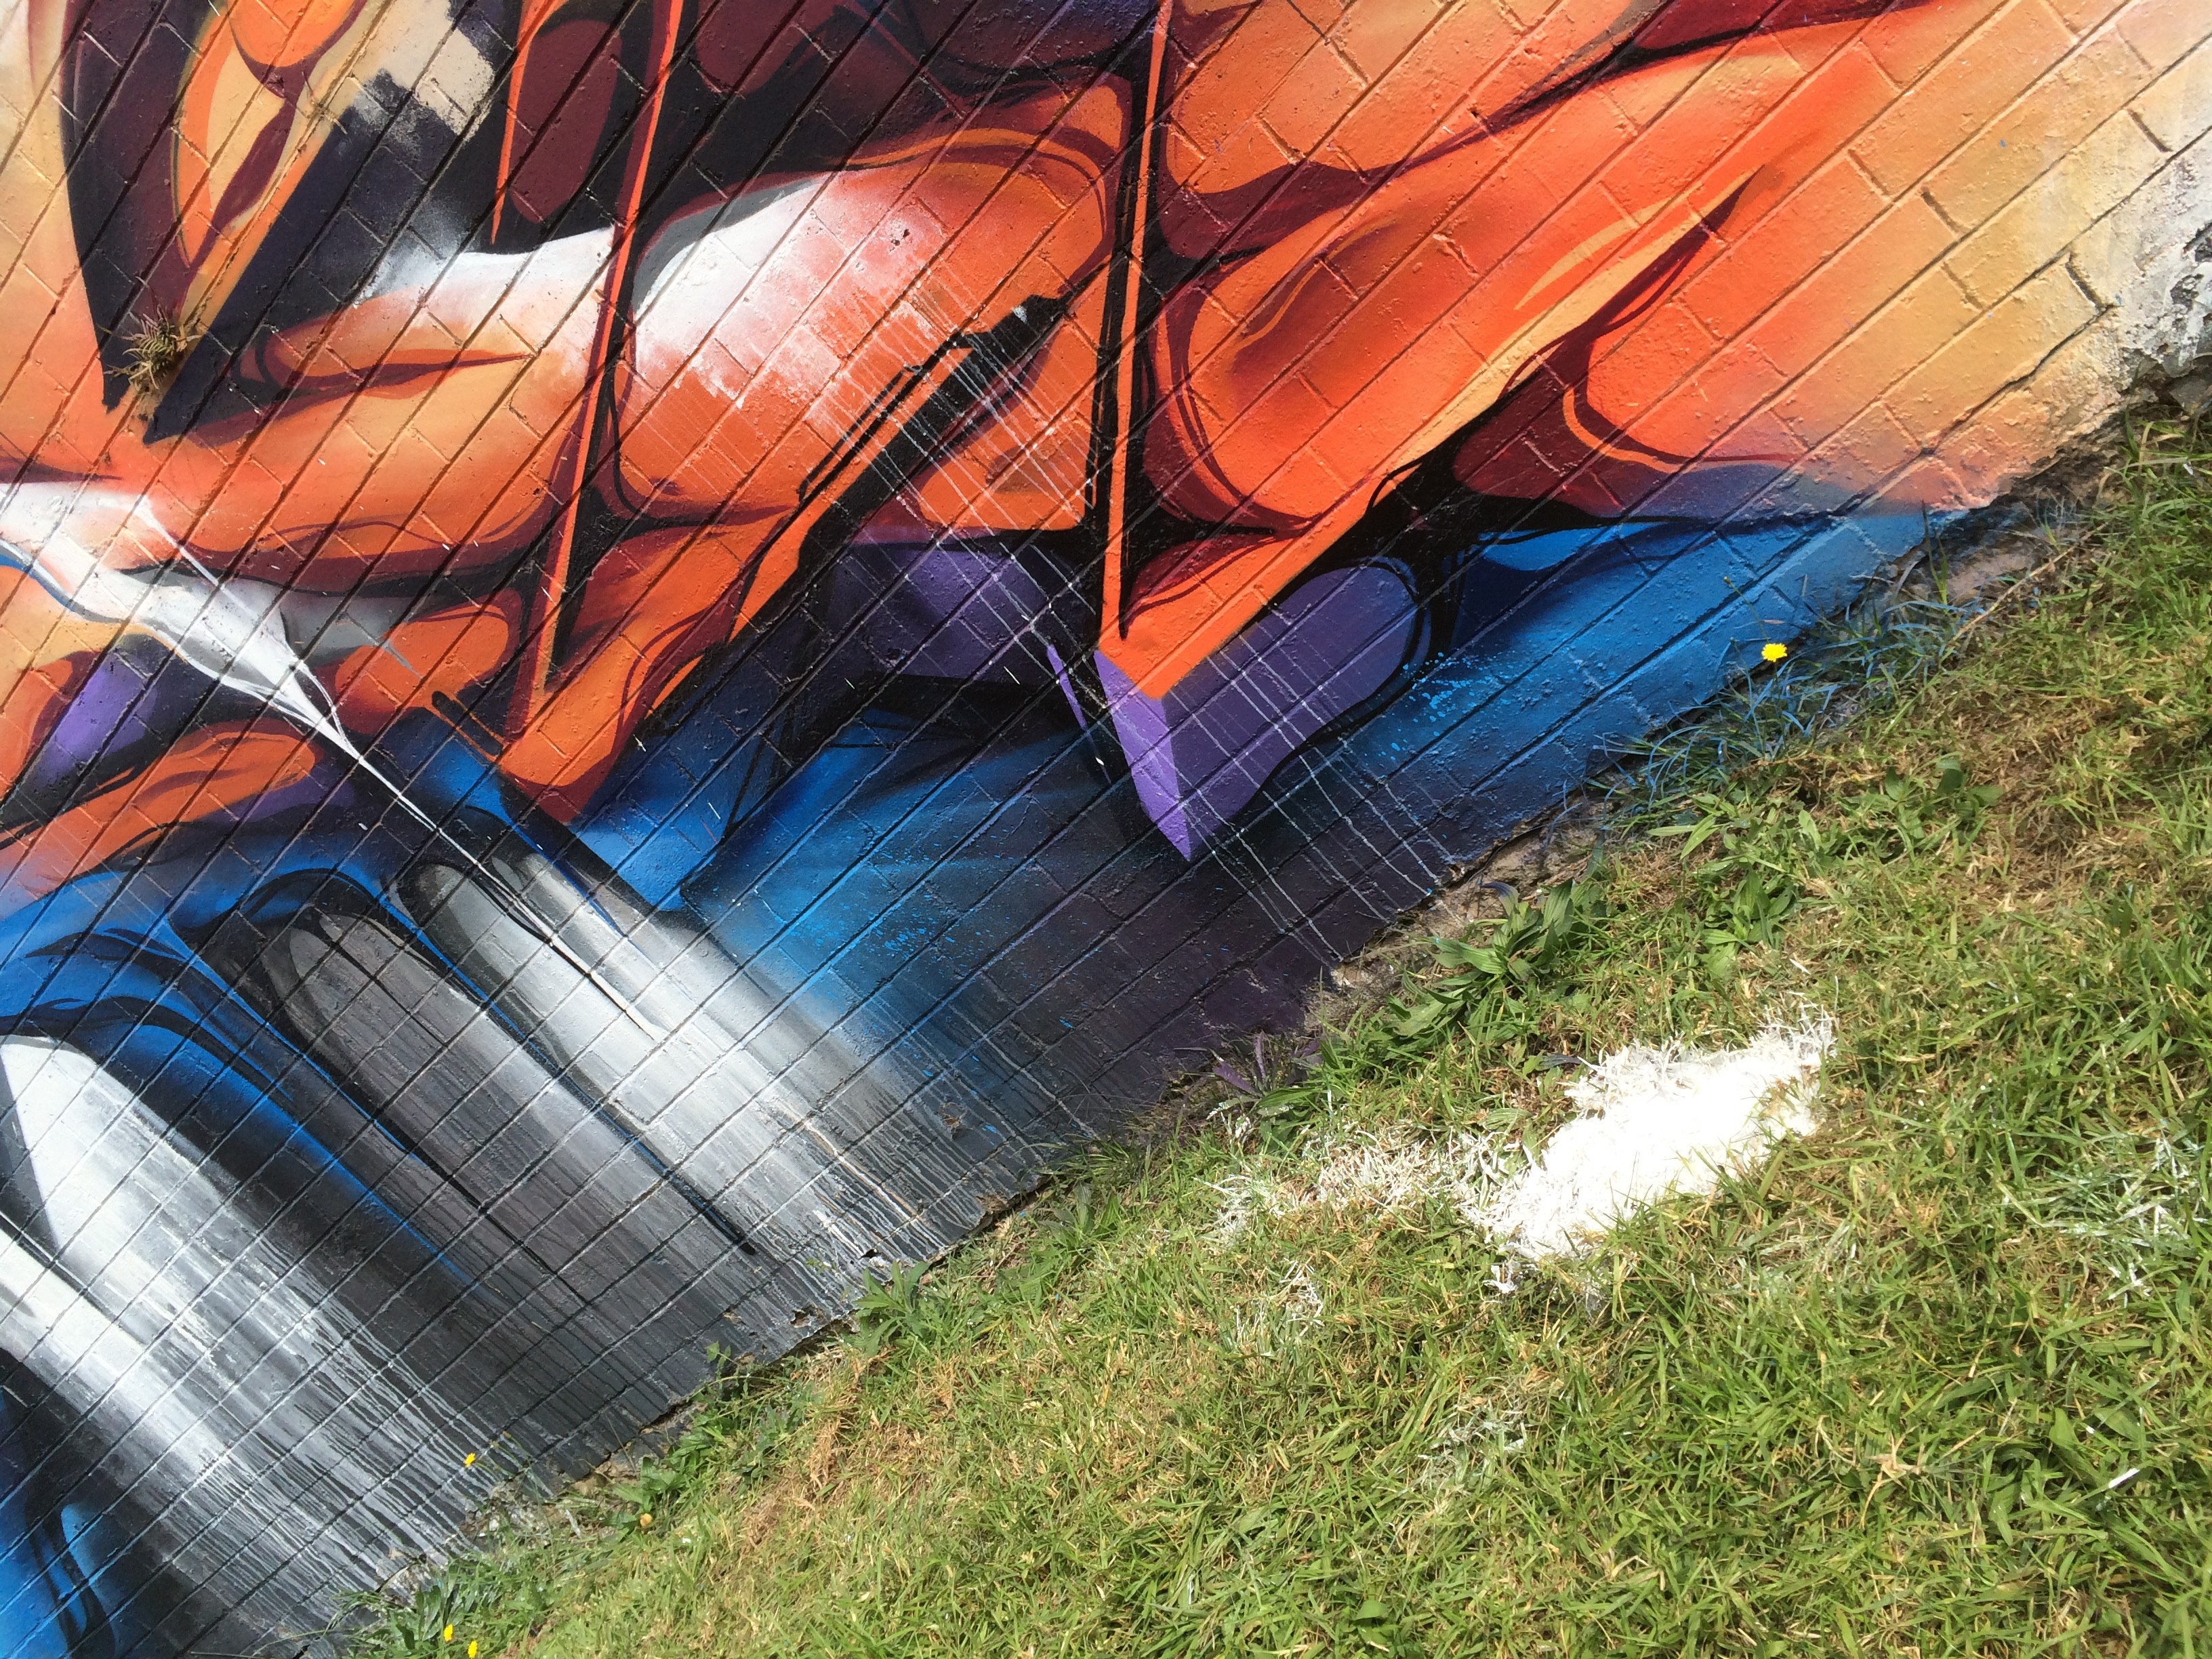 A work by Does - Toowoomba australia detail mural 2